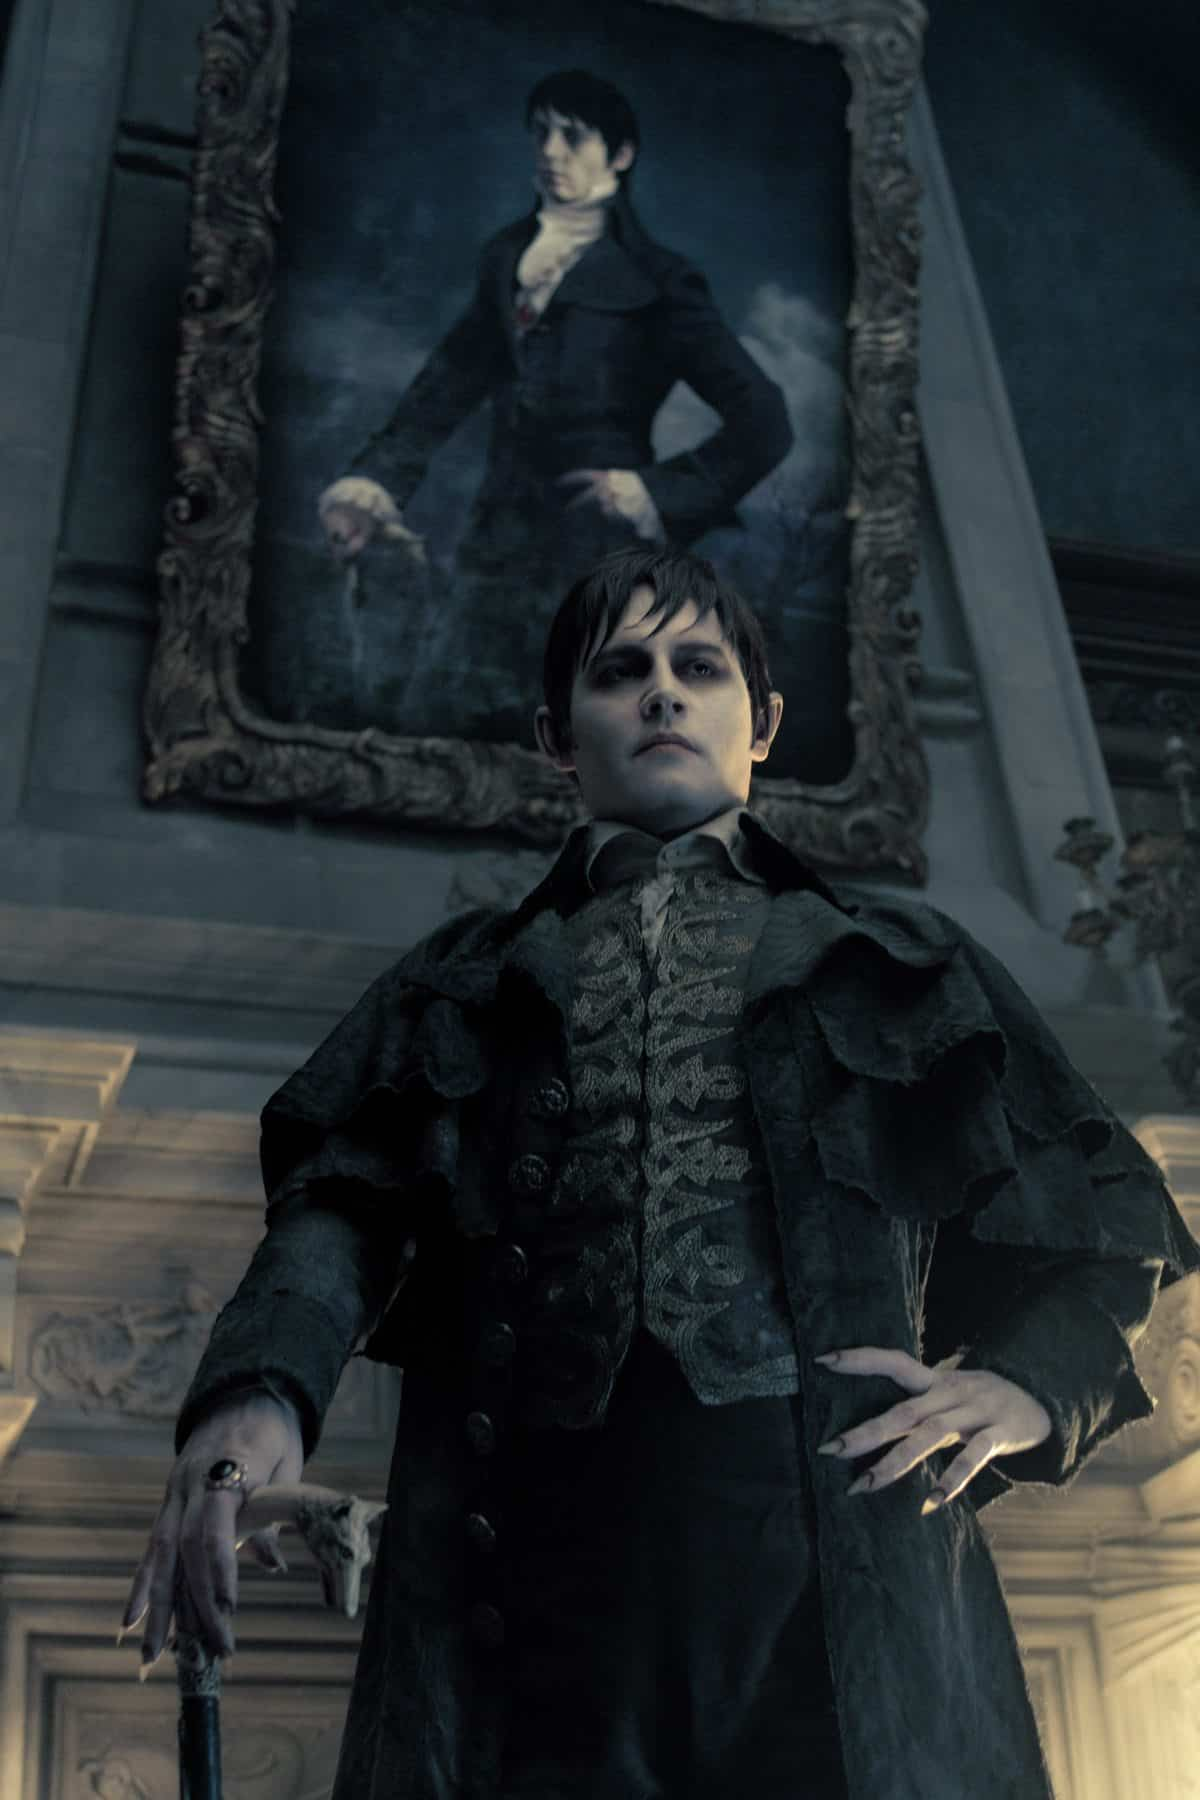 JOHNNY DEPP as Barnabas Collins in Warner Bros. PicturesÕ and Village Roadshow PicturesÕ gothic comedy ÒDARK SHADOWS,Ó a Warner Bros. Pictures release. Photo by Peter Mountain